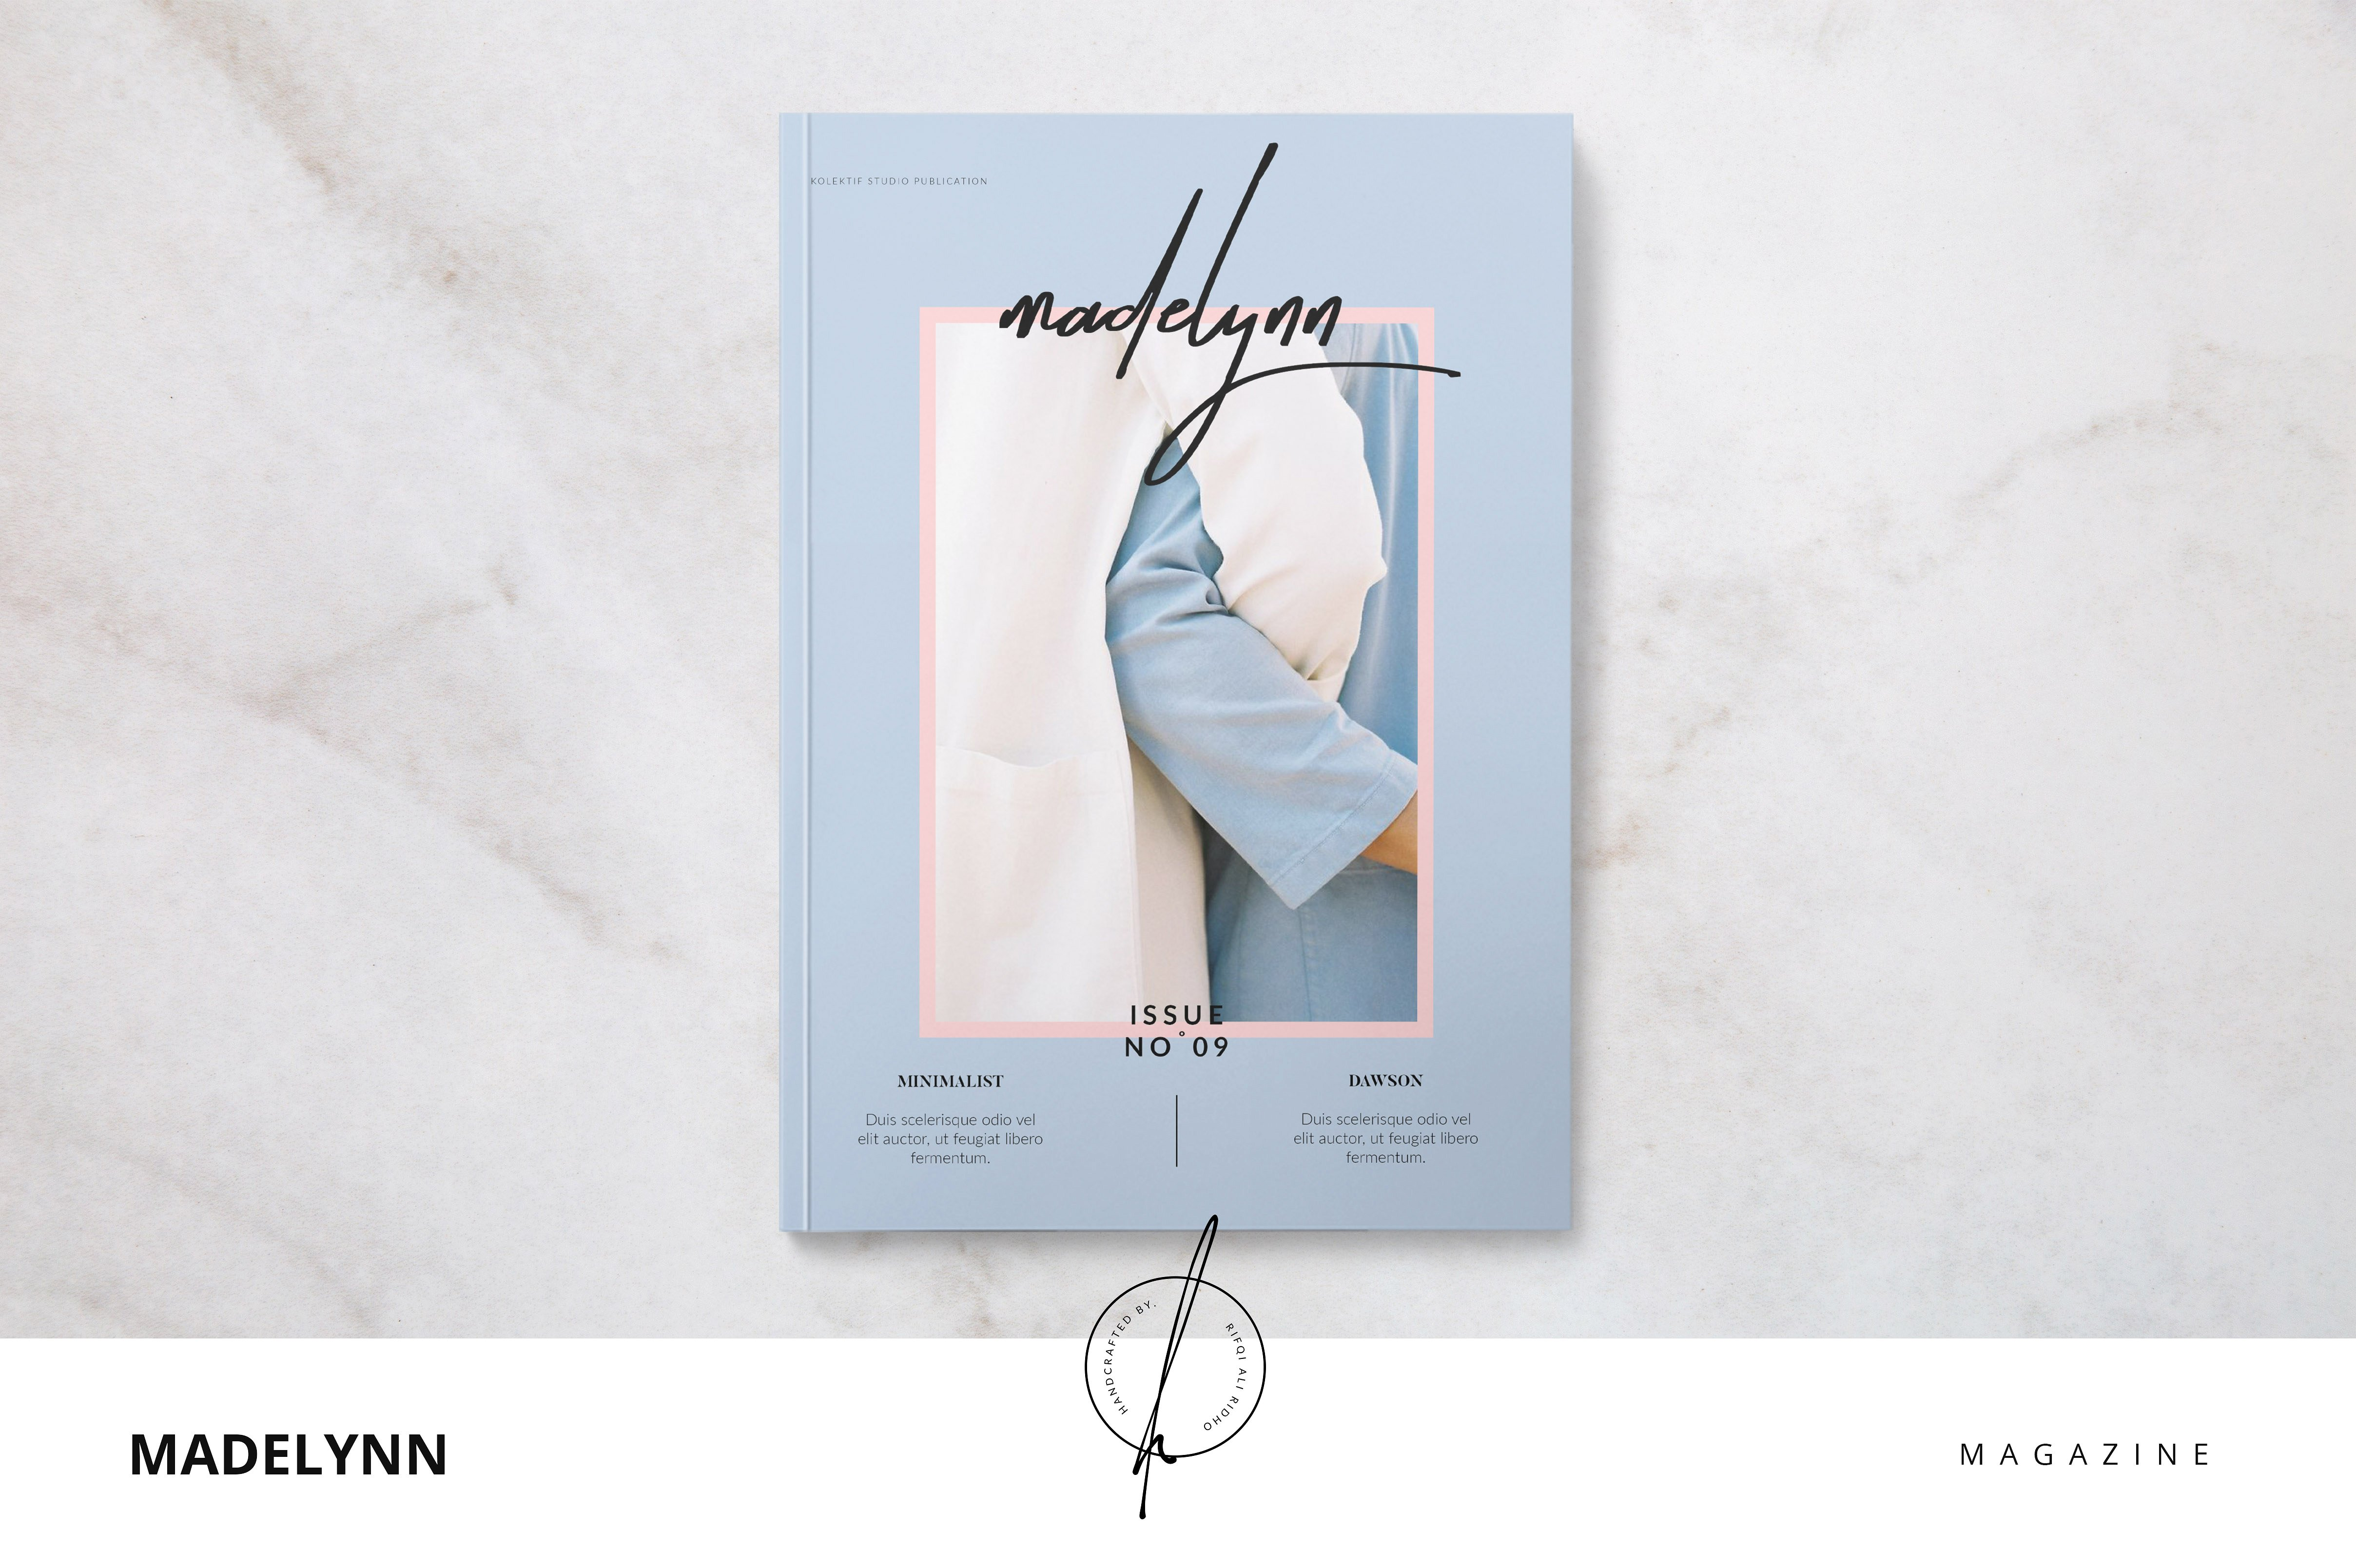 madelynn magazine template photography